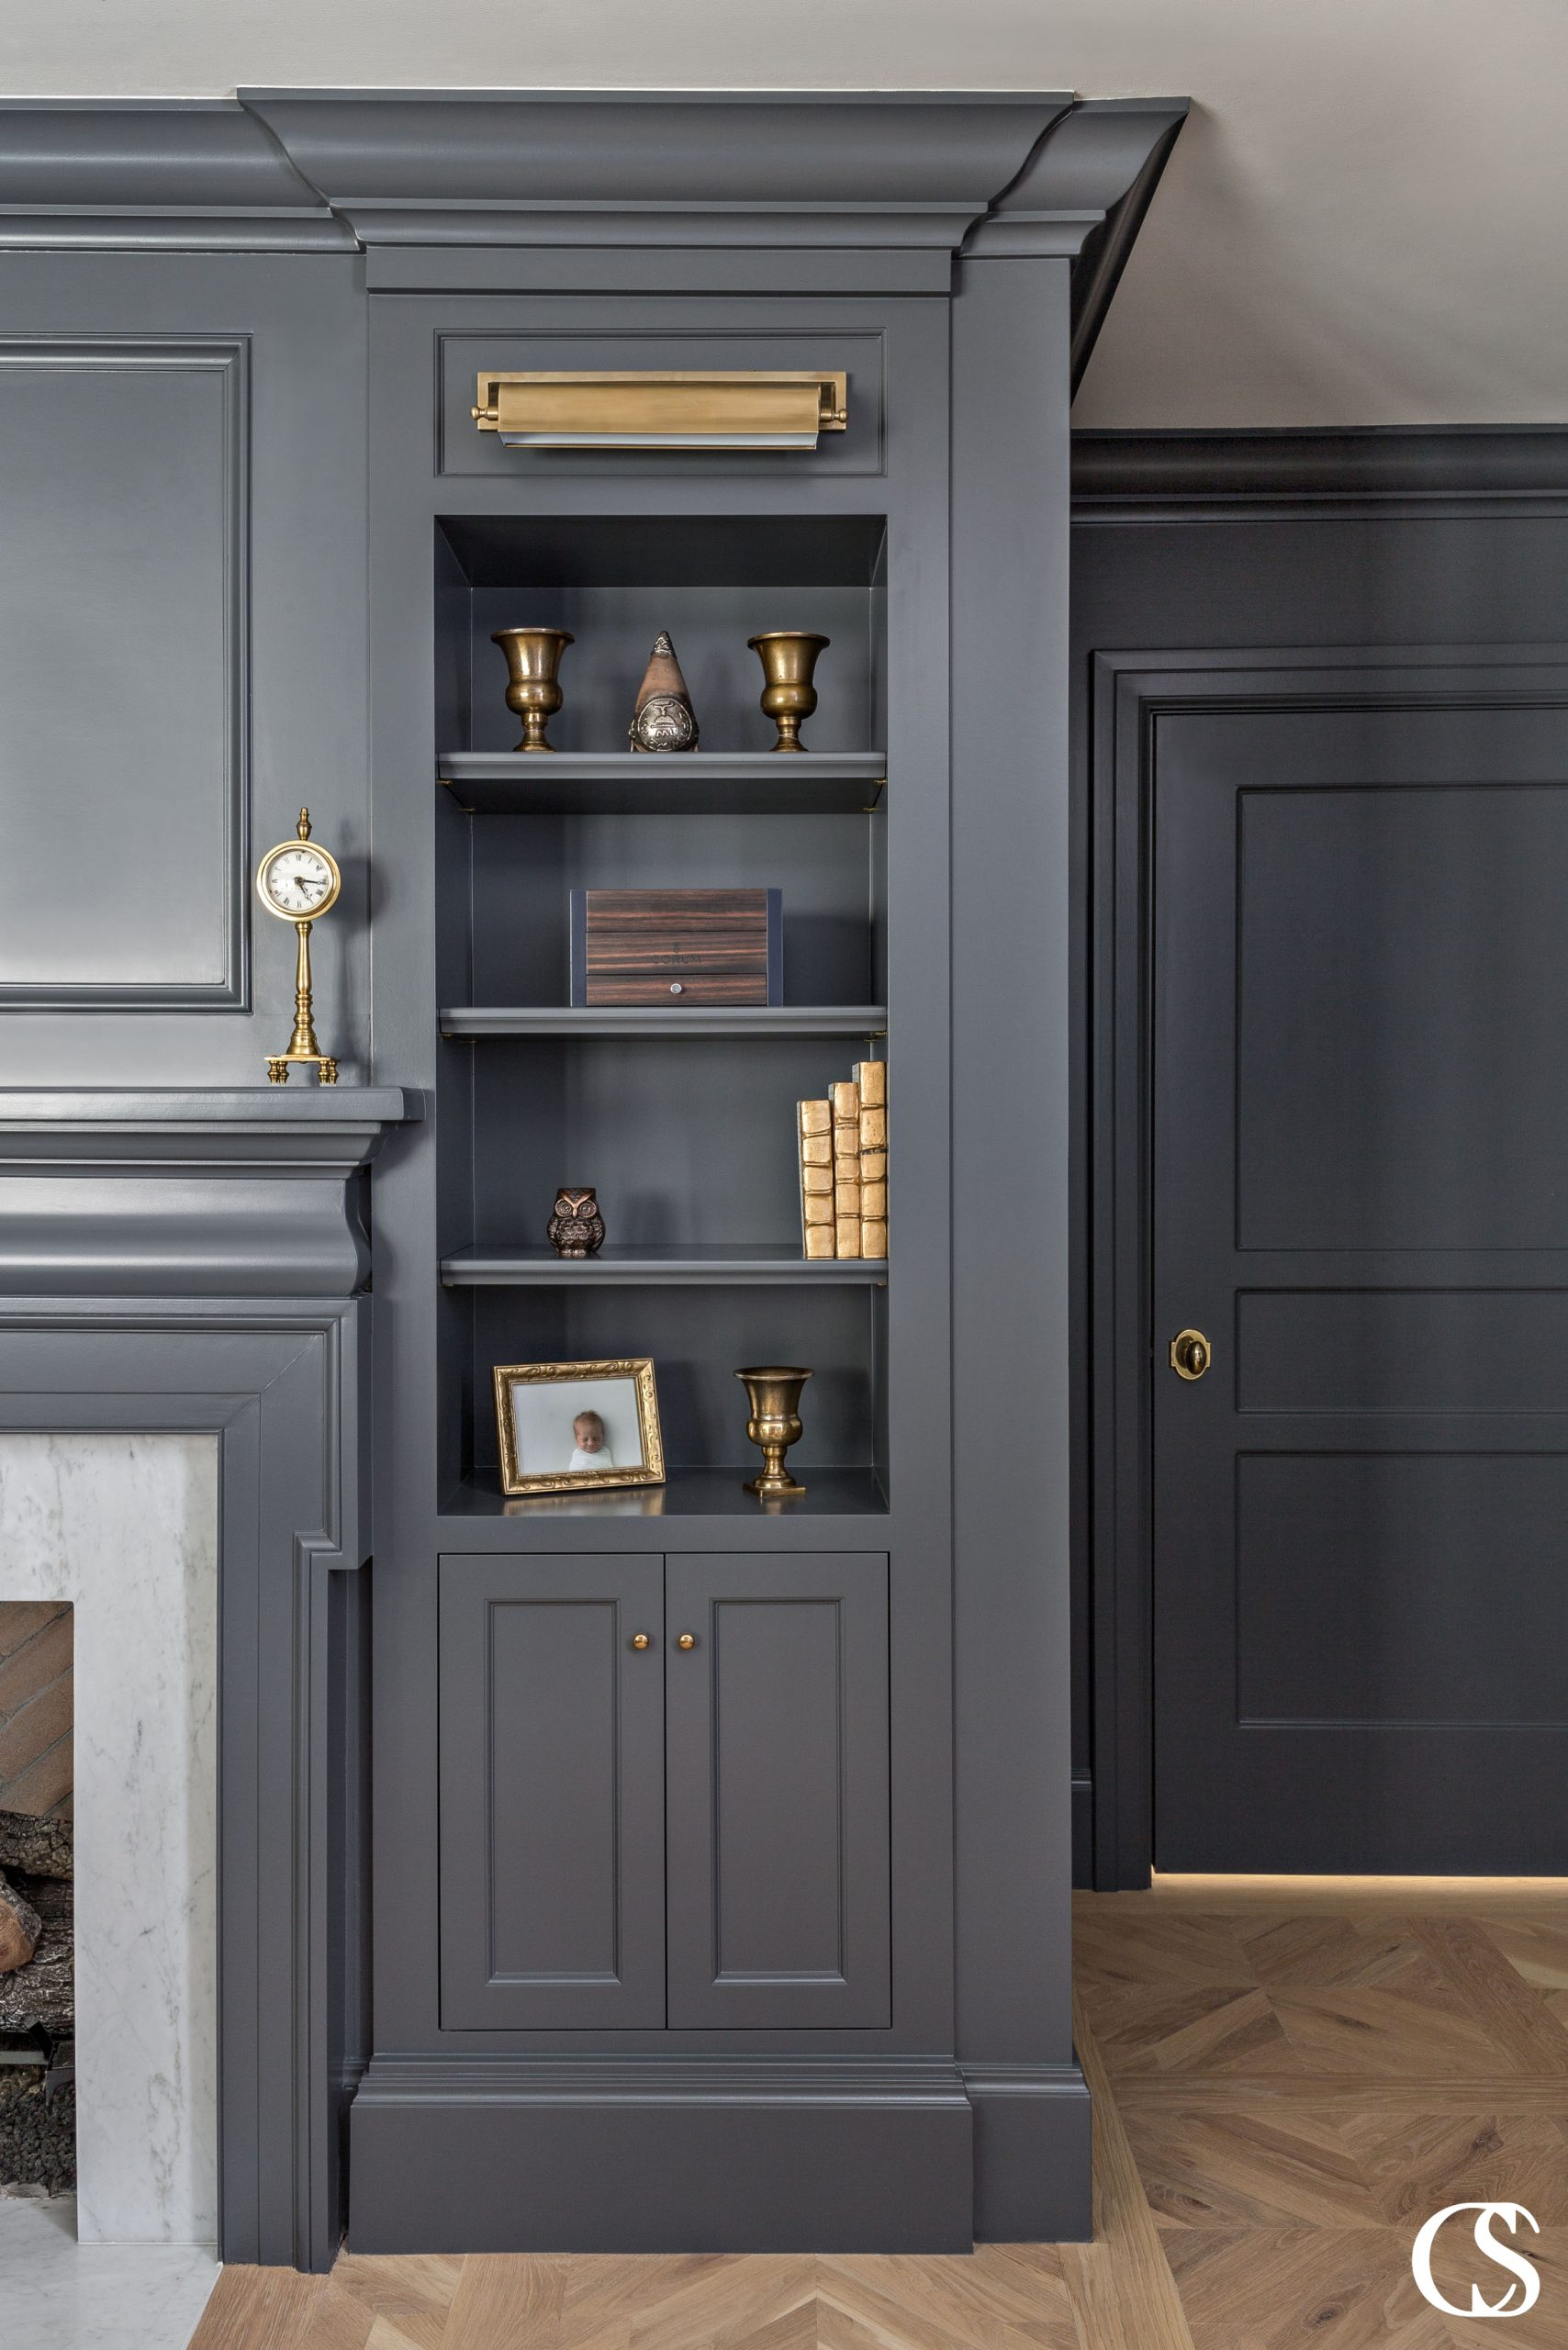 Why not add some built ins flanking the fireplace? The best custom cabinets provide for your family's needs, but also add to the character of your home. Bonus if they're in a moody shade of paint!